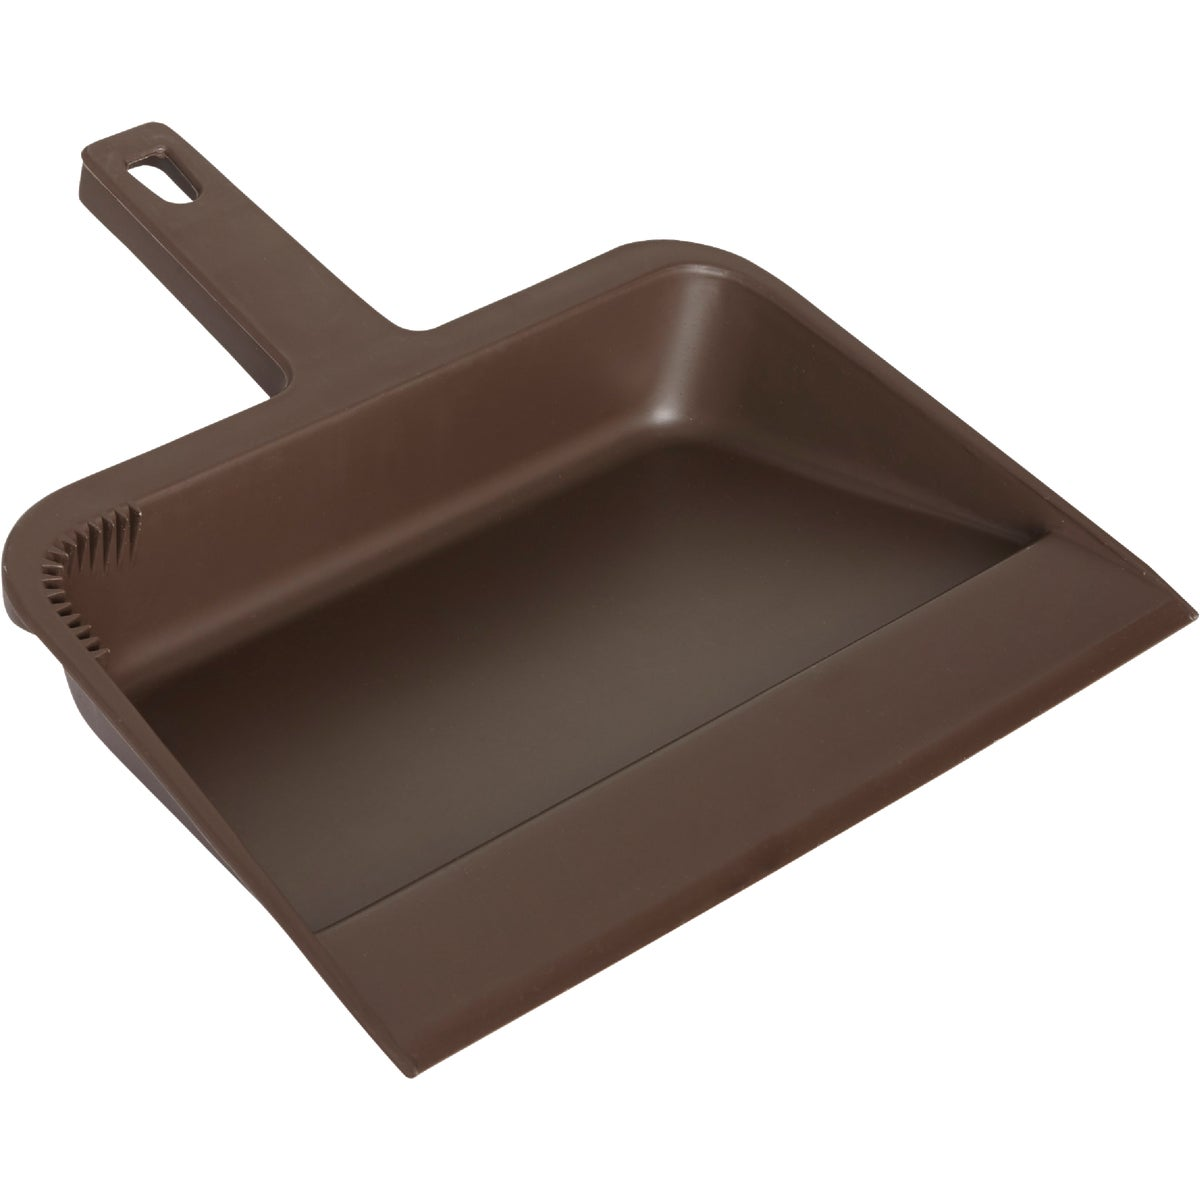 HEAVY-DUTY DUST PAN - FG200500CHAR by Rubbermaid Comm Prod